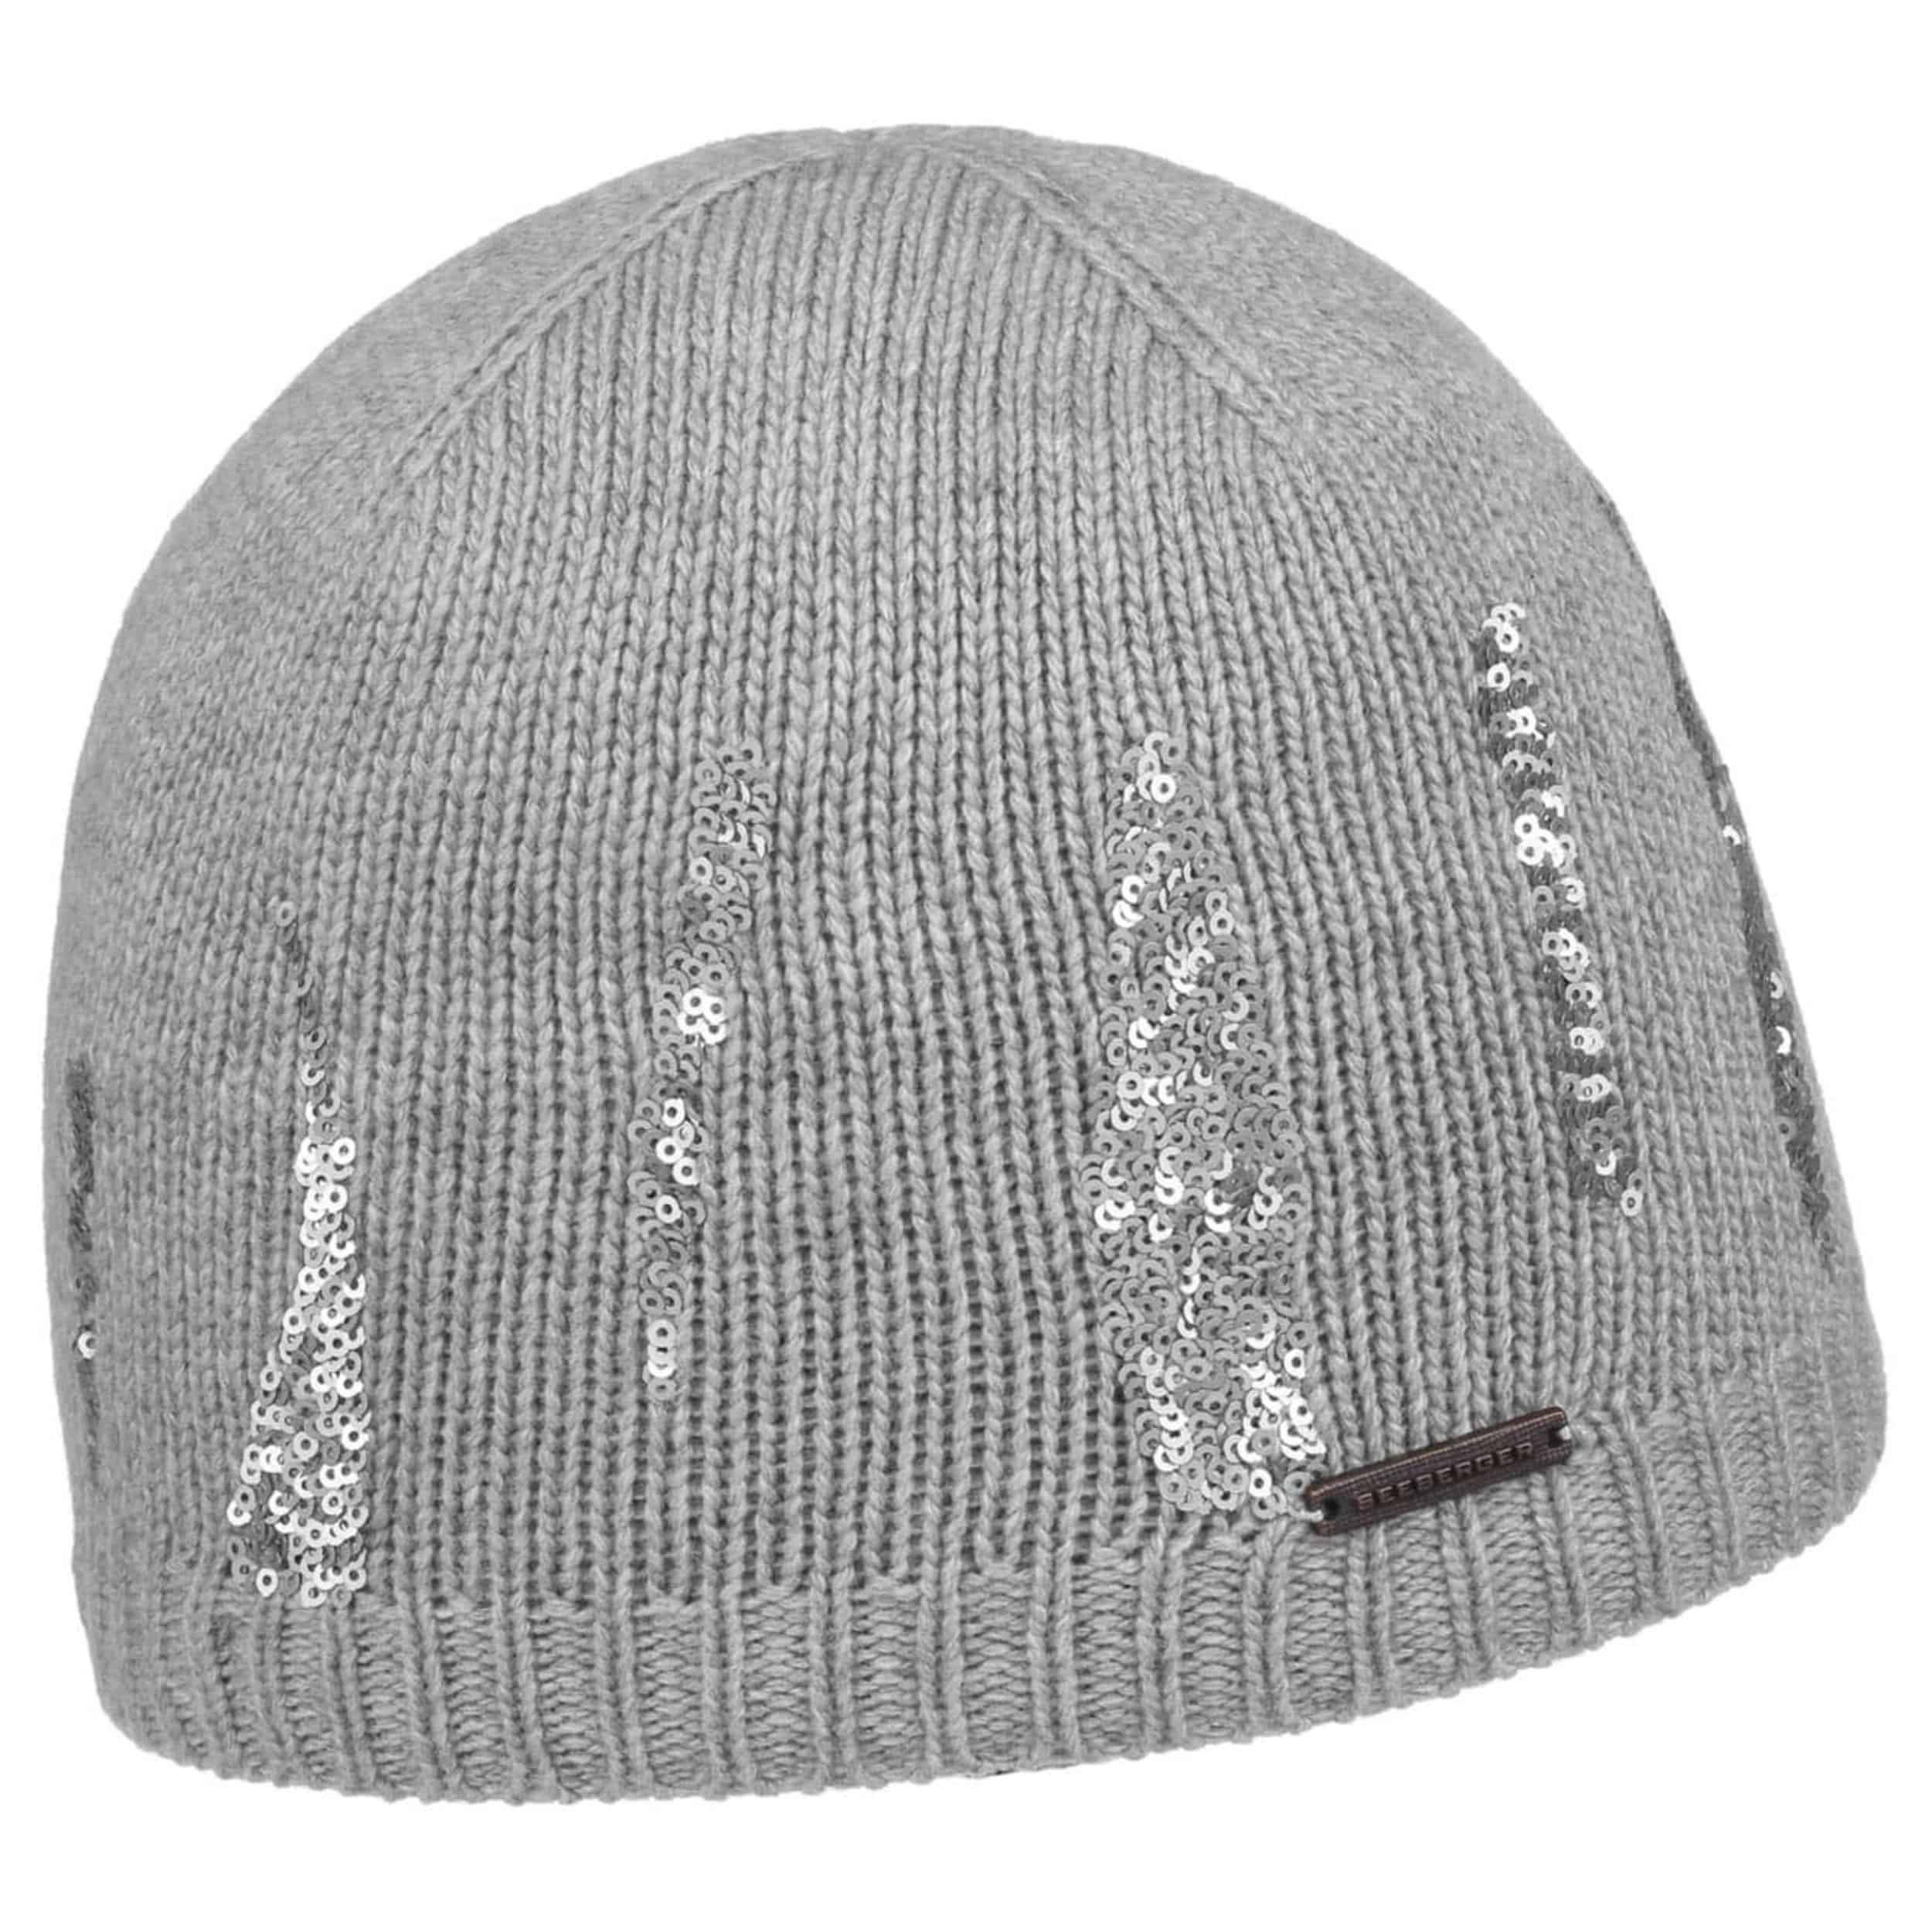 Lustrini Beanie with Sequins by Seeberger